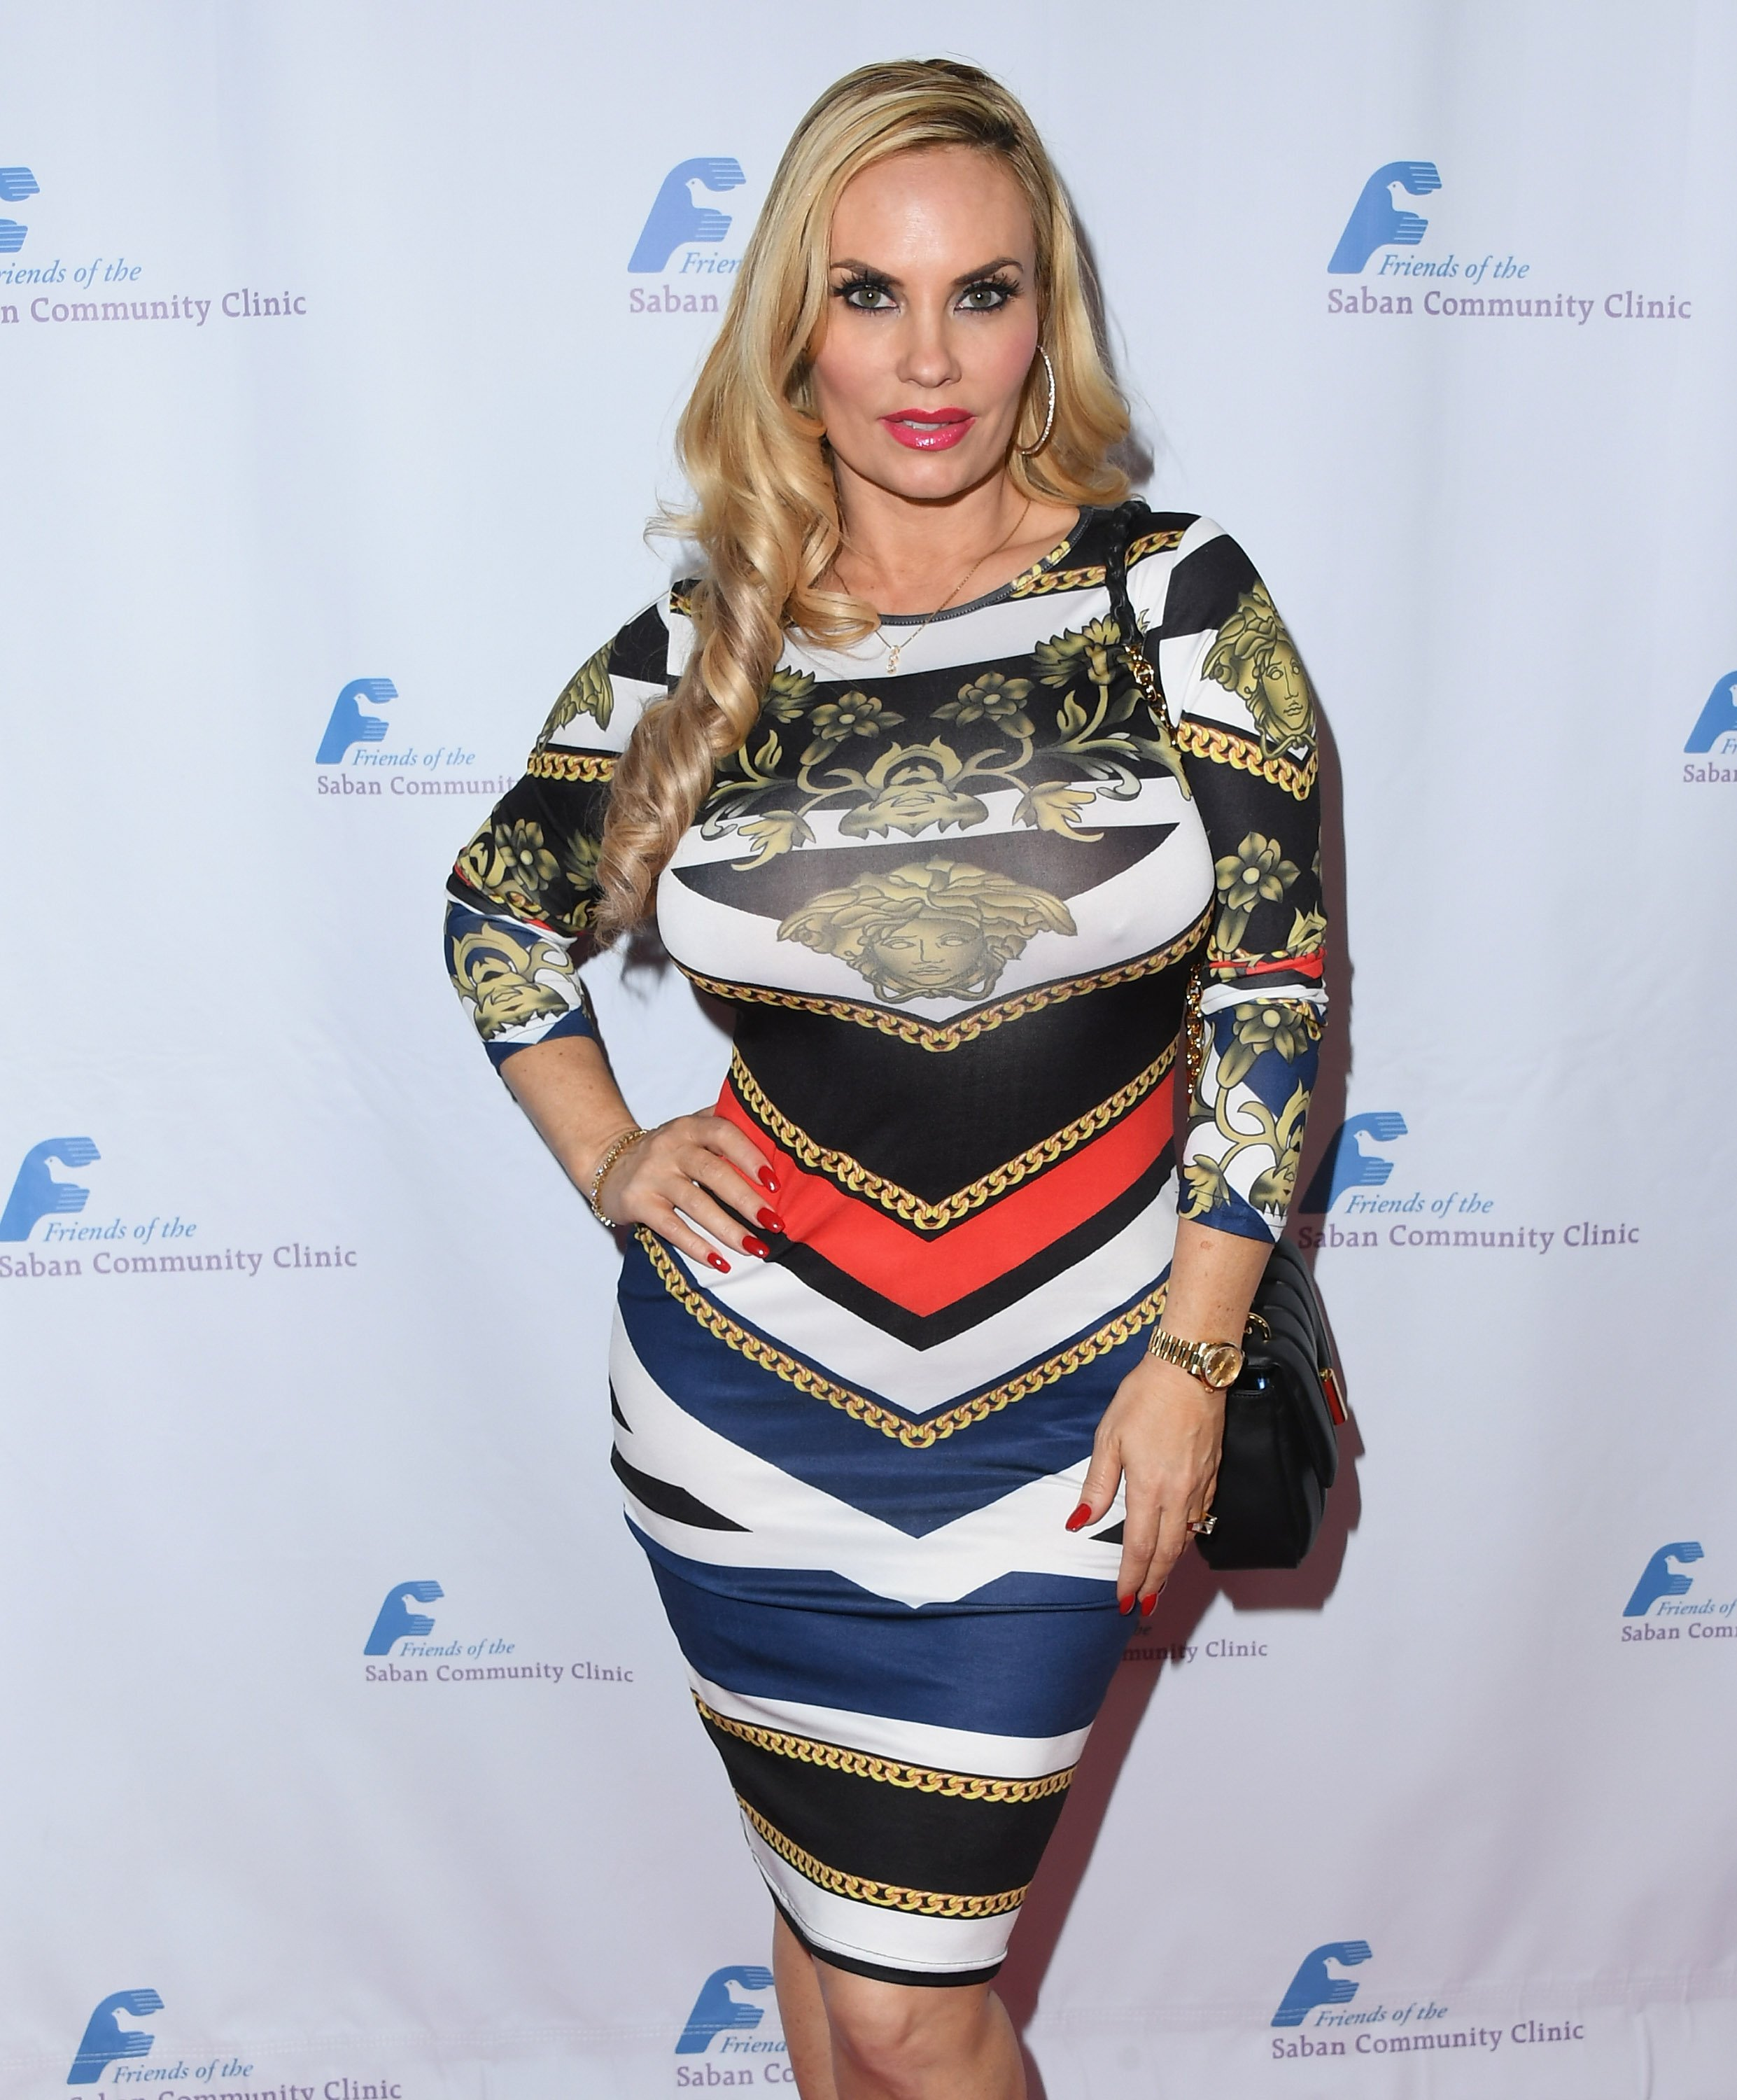 Coco Austin attends the Friends Of The Saban Community Clinic's 42nd Annual Gala on November 12, 2018, in Beverly Hills, California. | Source: Getty Images